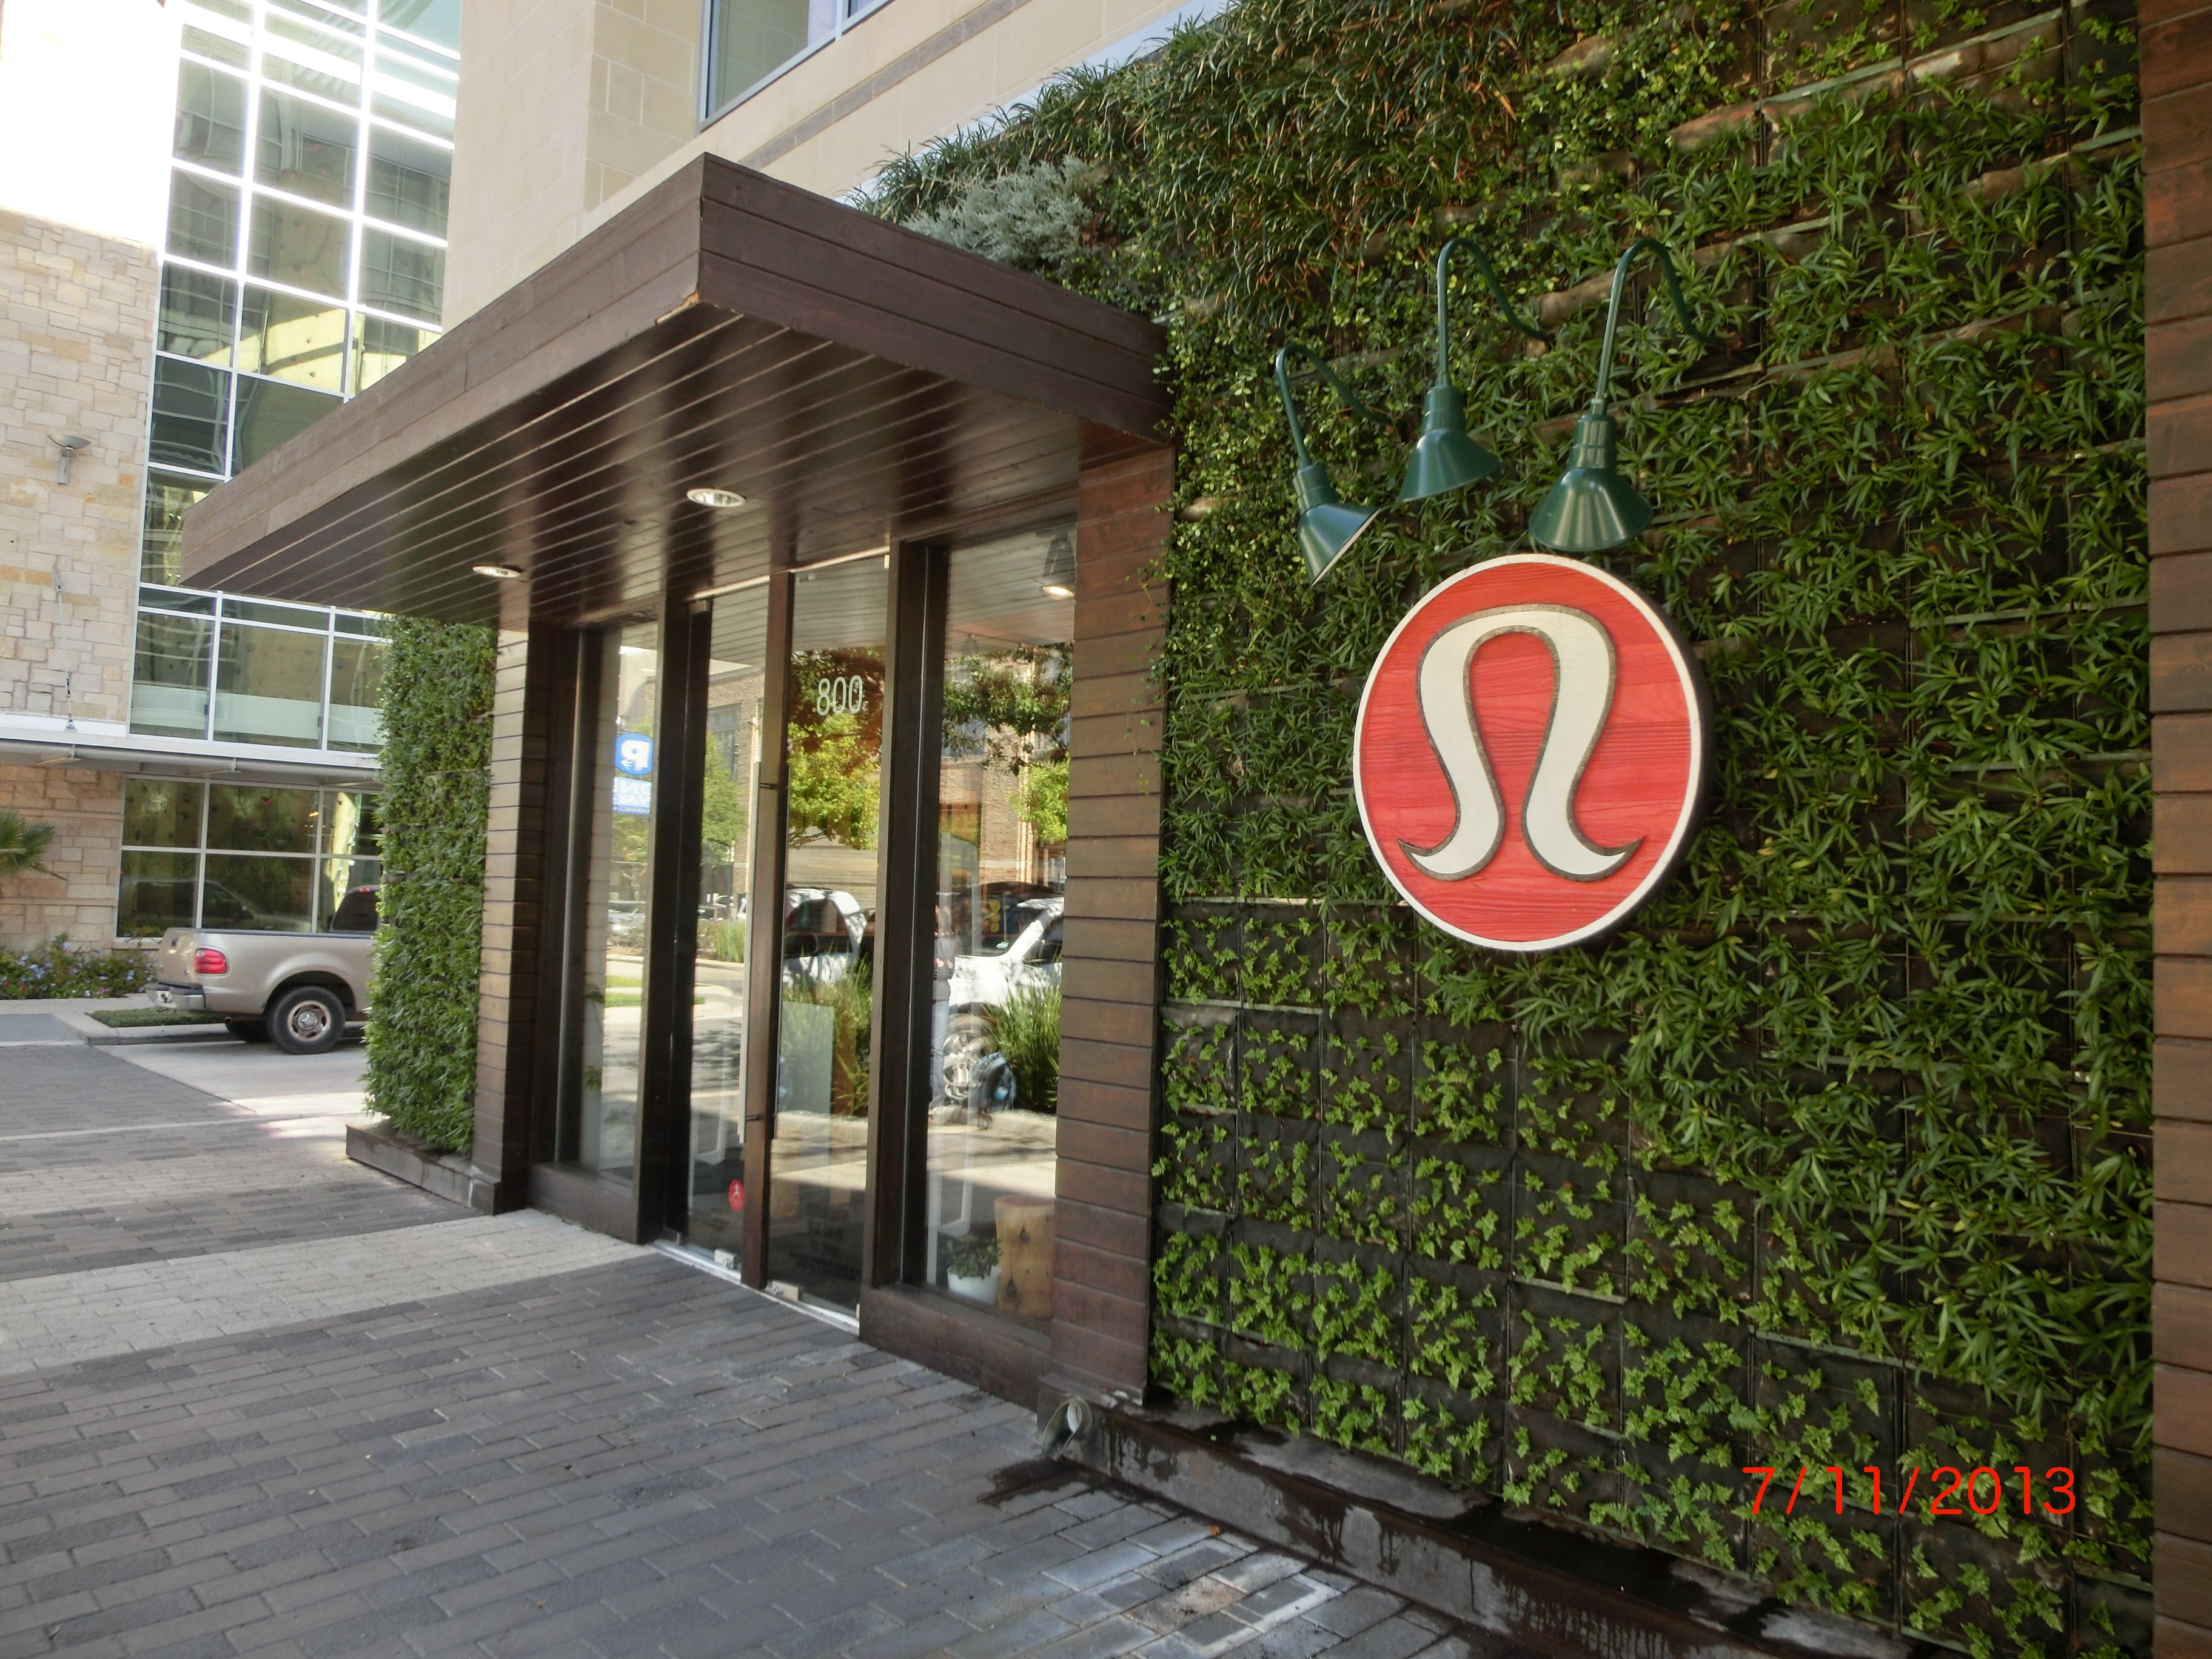 24e6444d4f lululemon store interior - Google Search | athletic store | Store ...